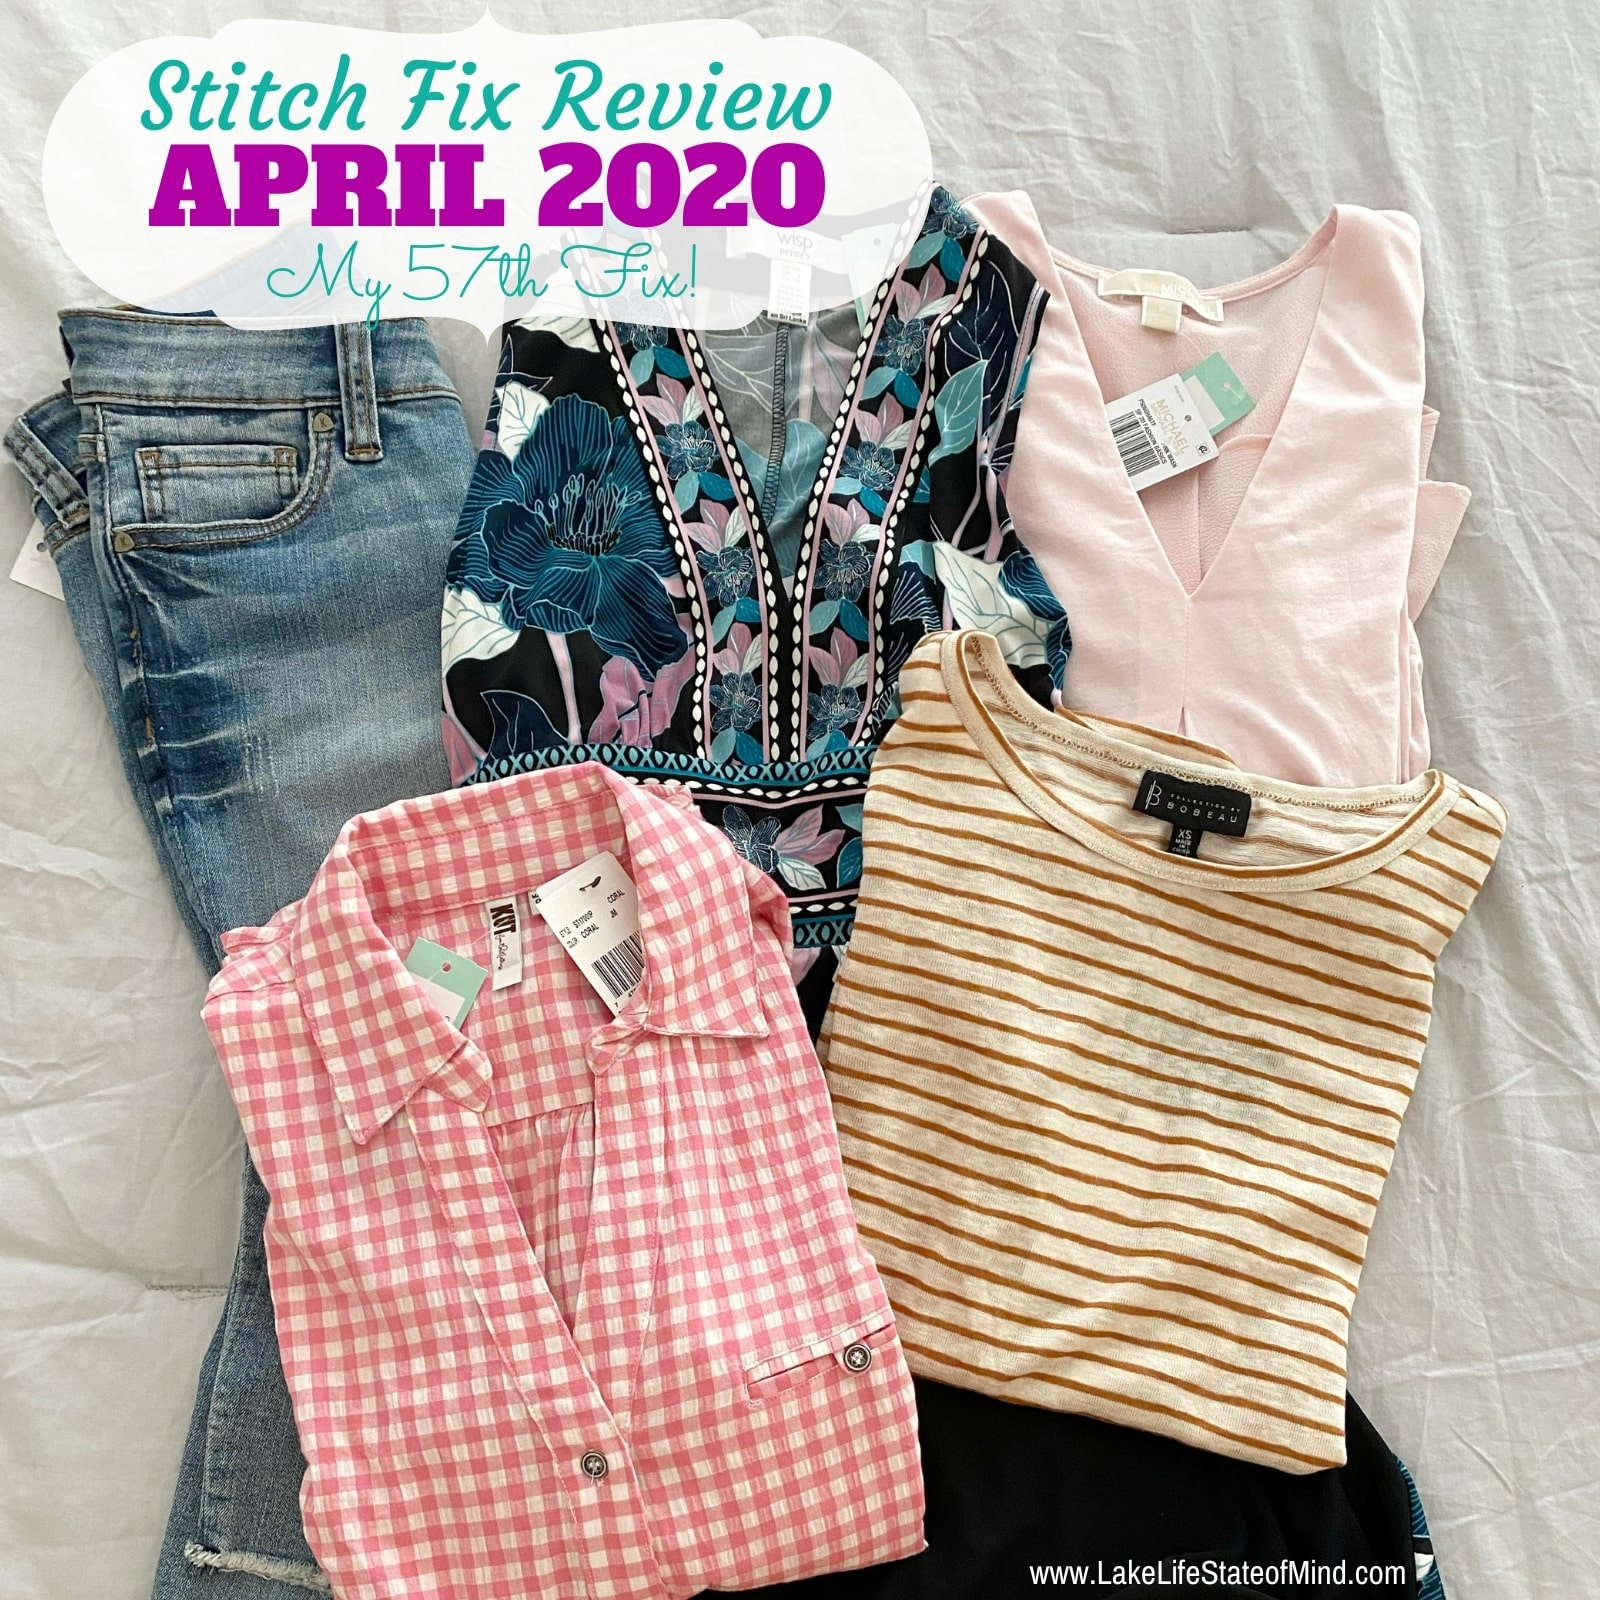 Stitch Fix Box Review: April 2020 Fix #57